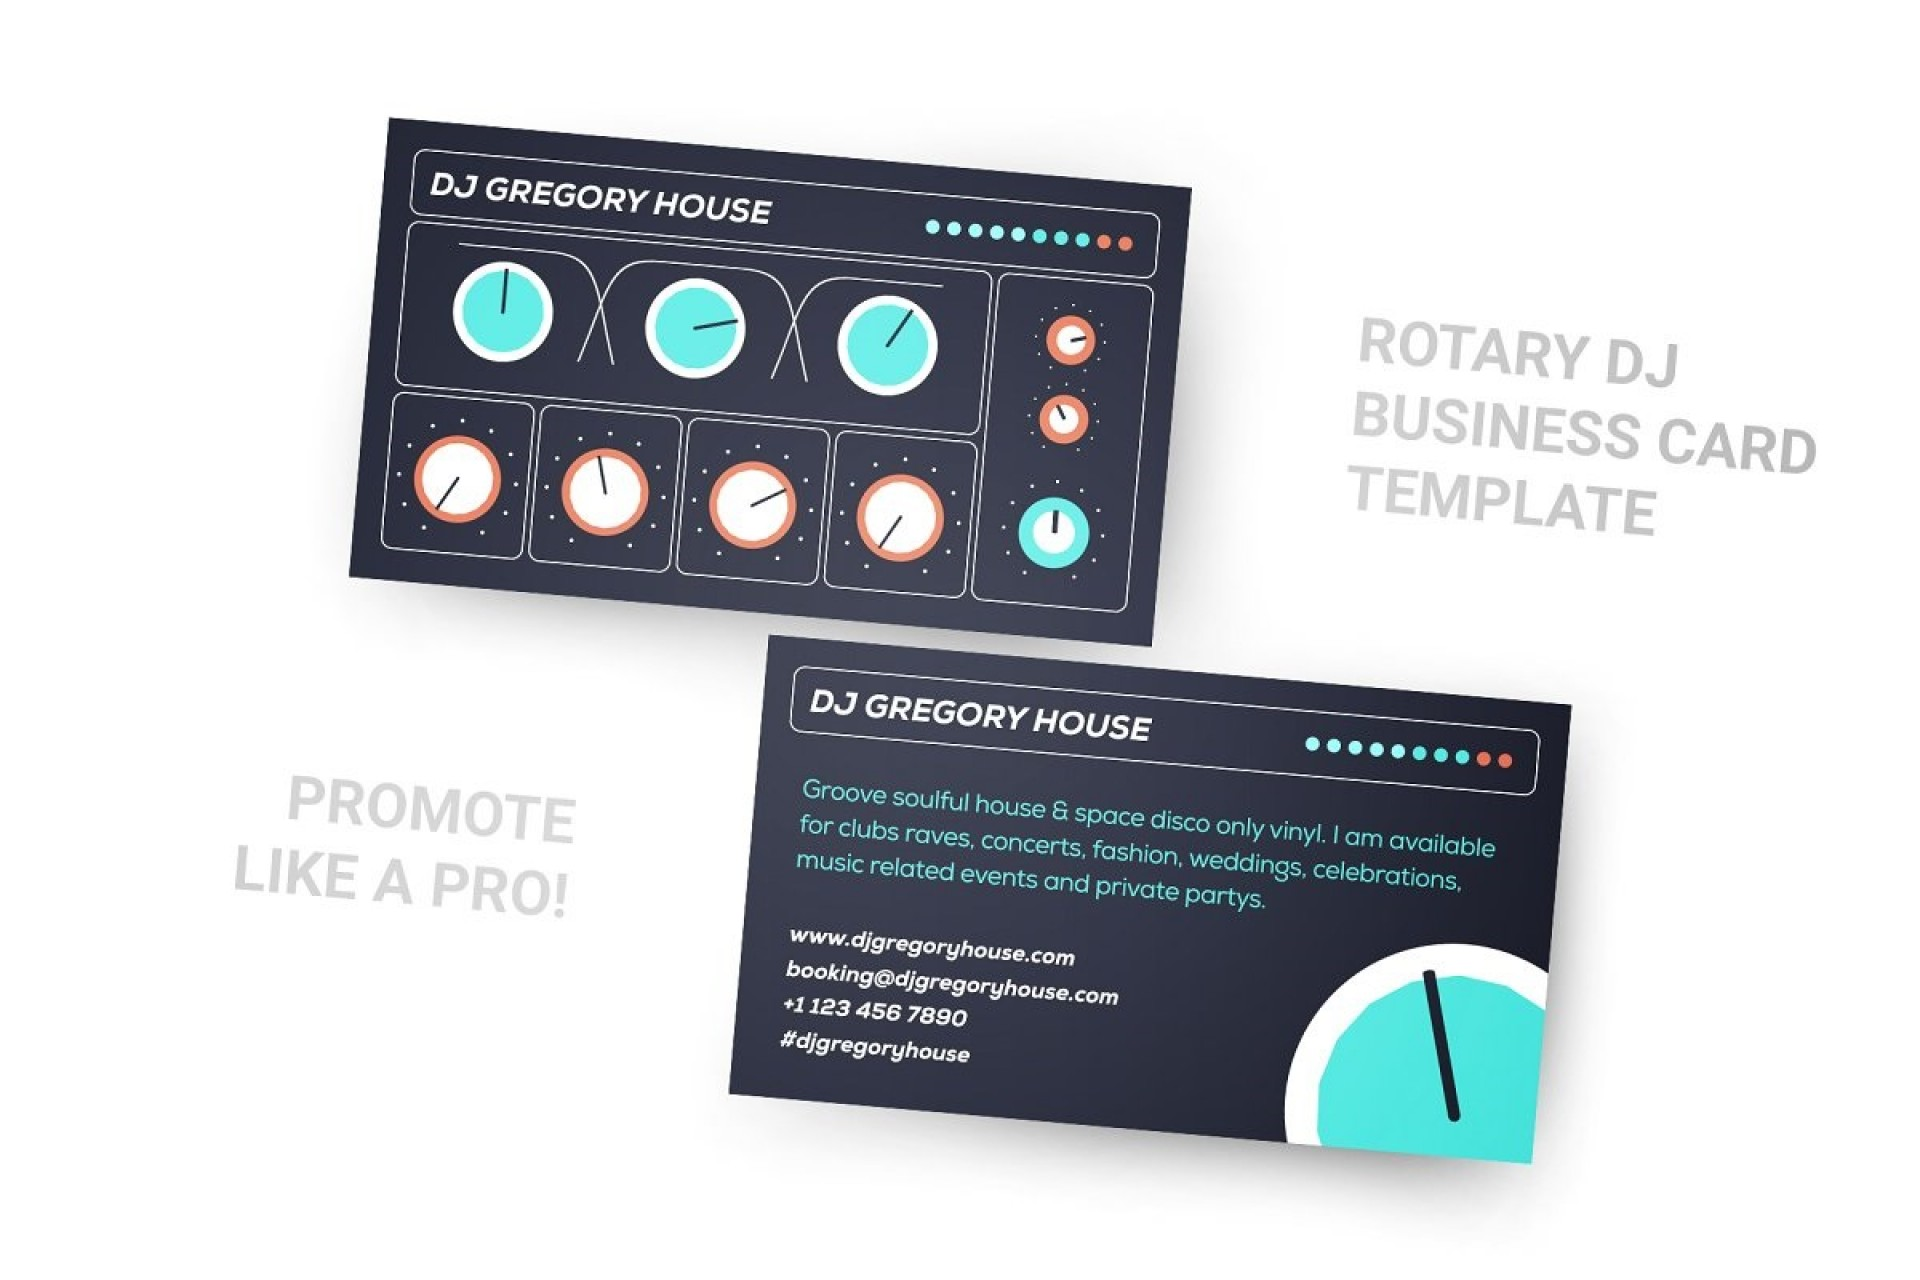 001 Excellent Dj Busines Card Template High Resolution  Psd Free Download1920